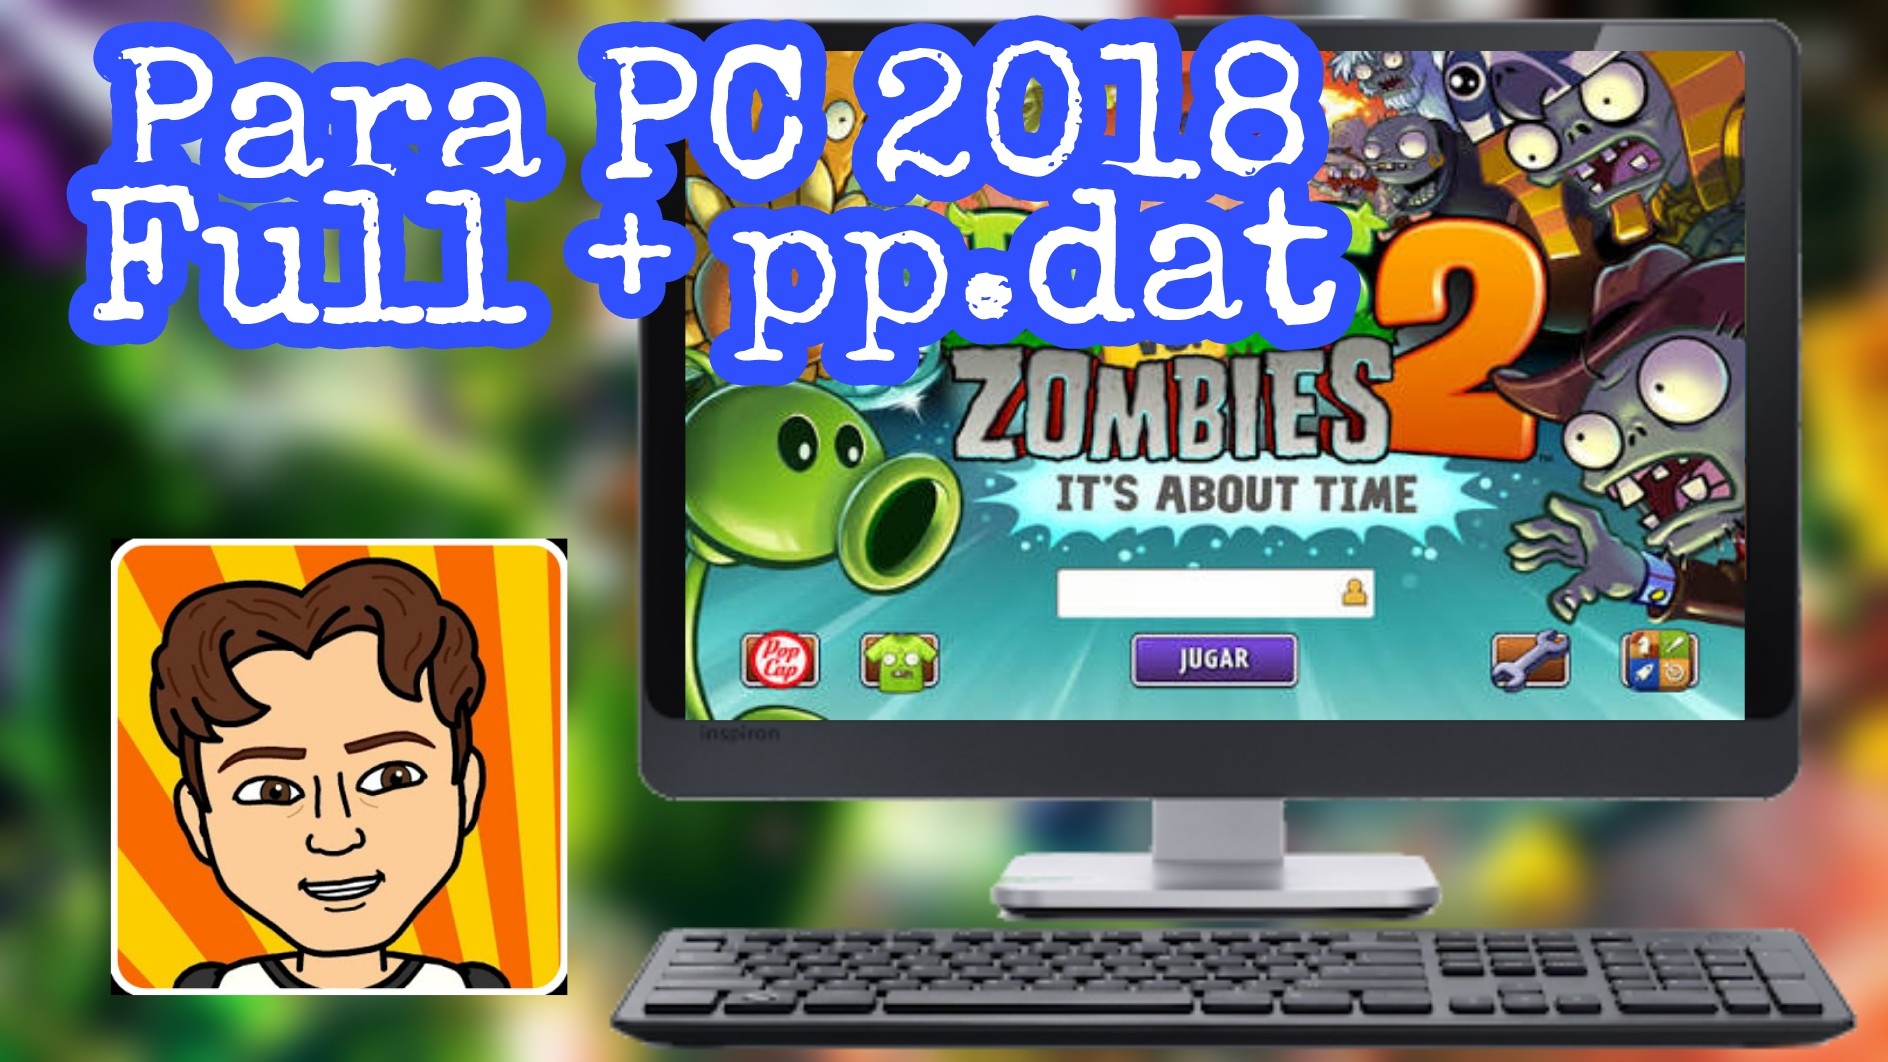 Plants Vs Zombies 2 Para Pc 2018 Full Juegos Para Android Y Pc